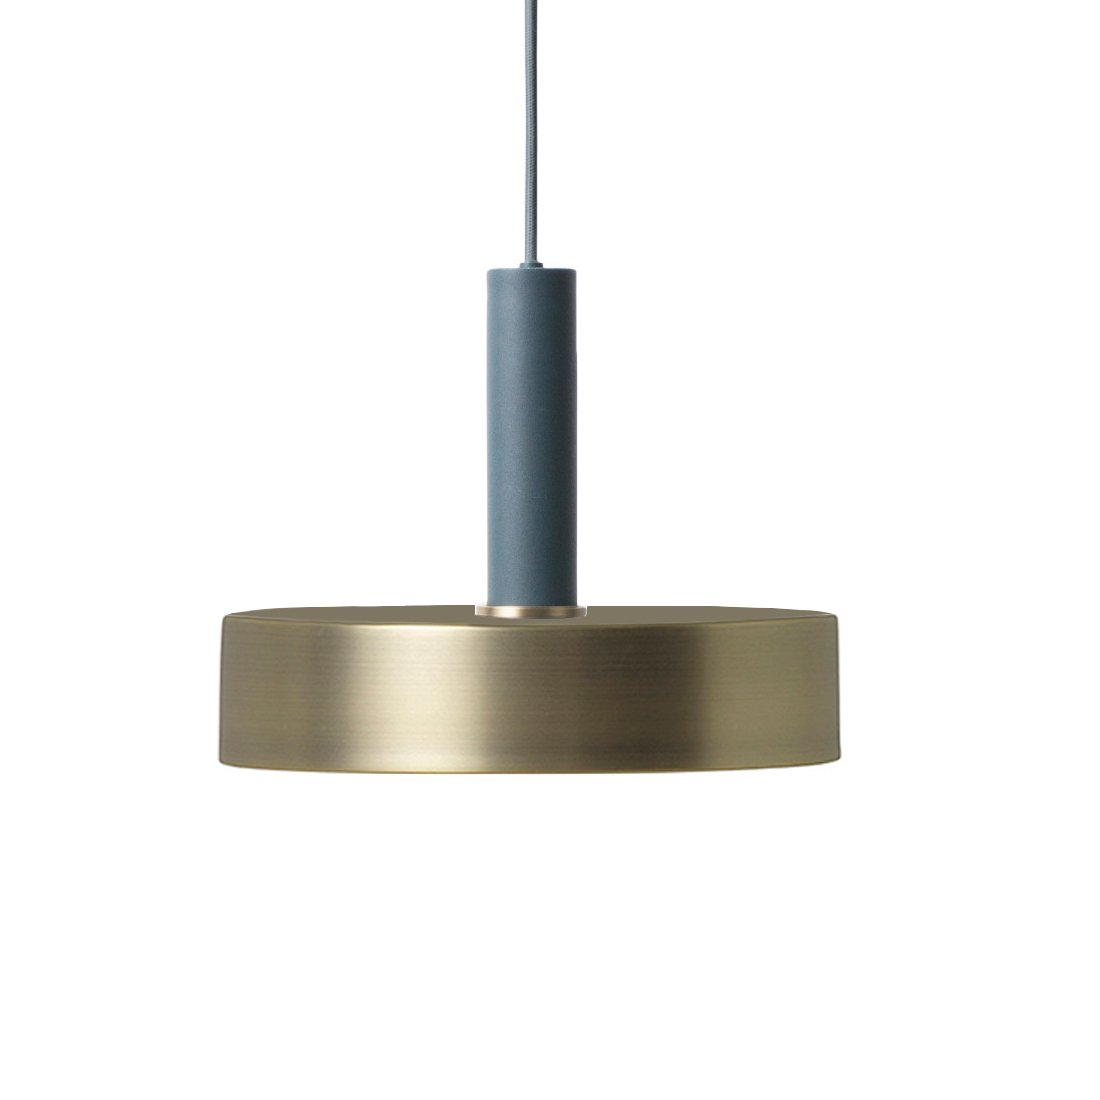 Ferm Living Collect Record High Hanglamp Donkerblauw Messing